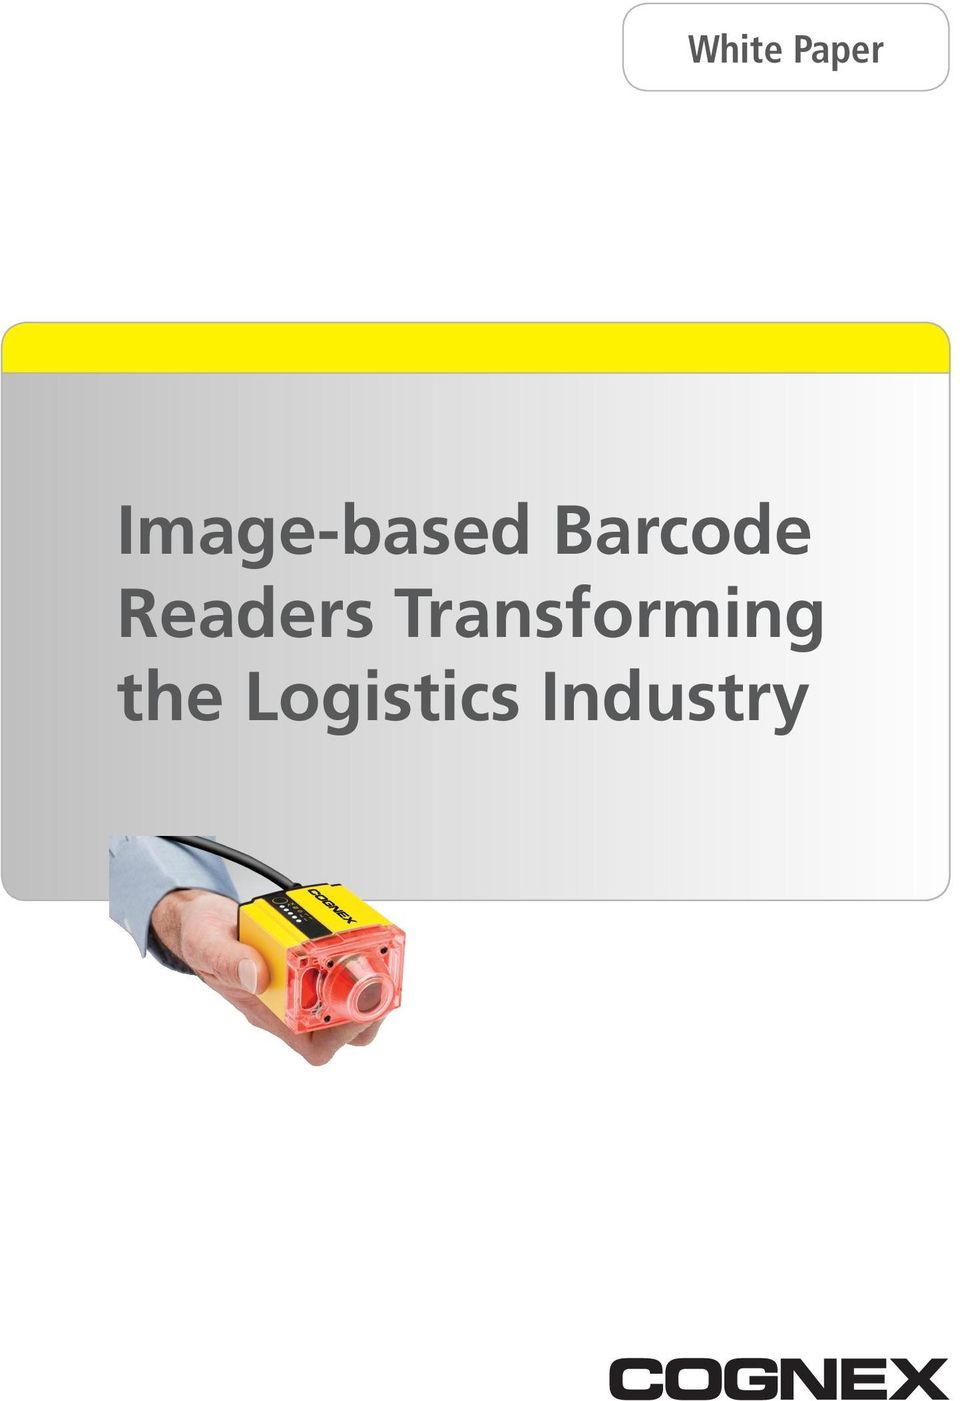 uk logistics industry essay A survey of over 550 professionals in the uk by comptia, the leading trade association for the global technology industry, has revealed that despite the chronic it skills gap, only 4 in 10 firms have a strategy in place to address the challenge and more than half (55%) struggle to even fully identify skills gaps among their workforce.